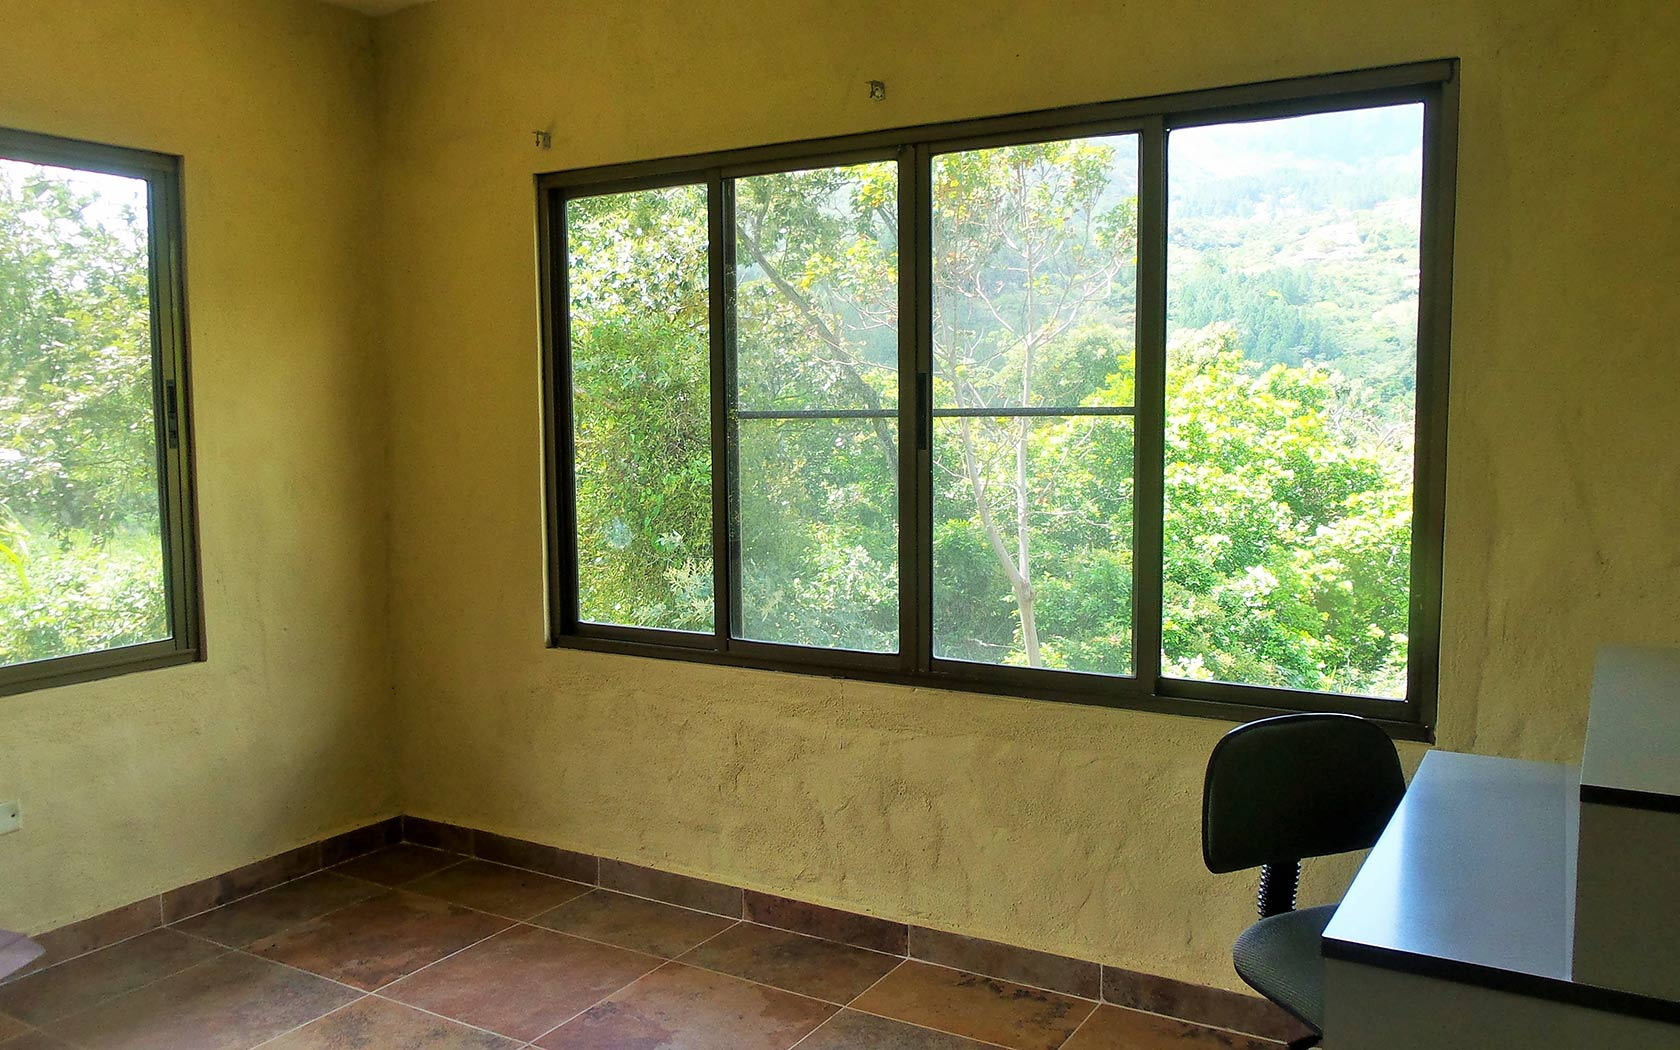 Panama-property-panamaequitymountain-home-near-river-altos-del-maria-8.jpg